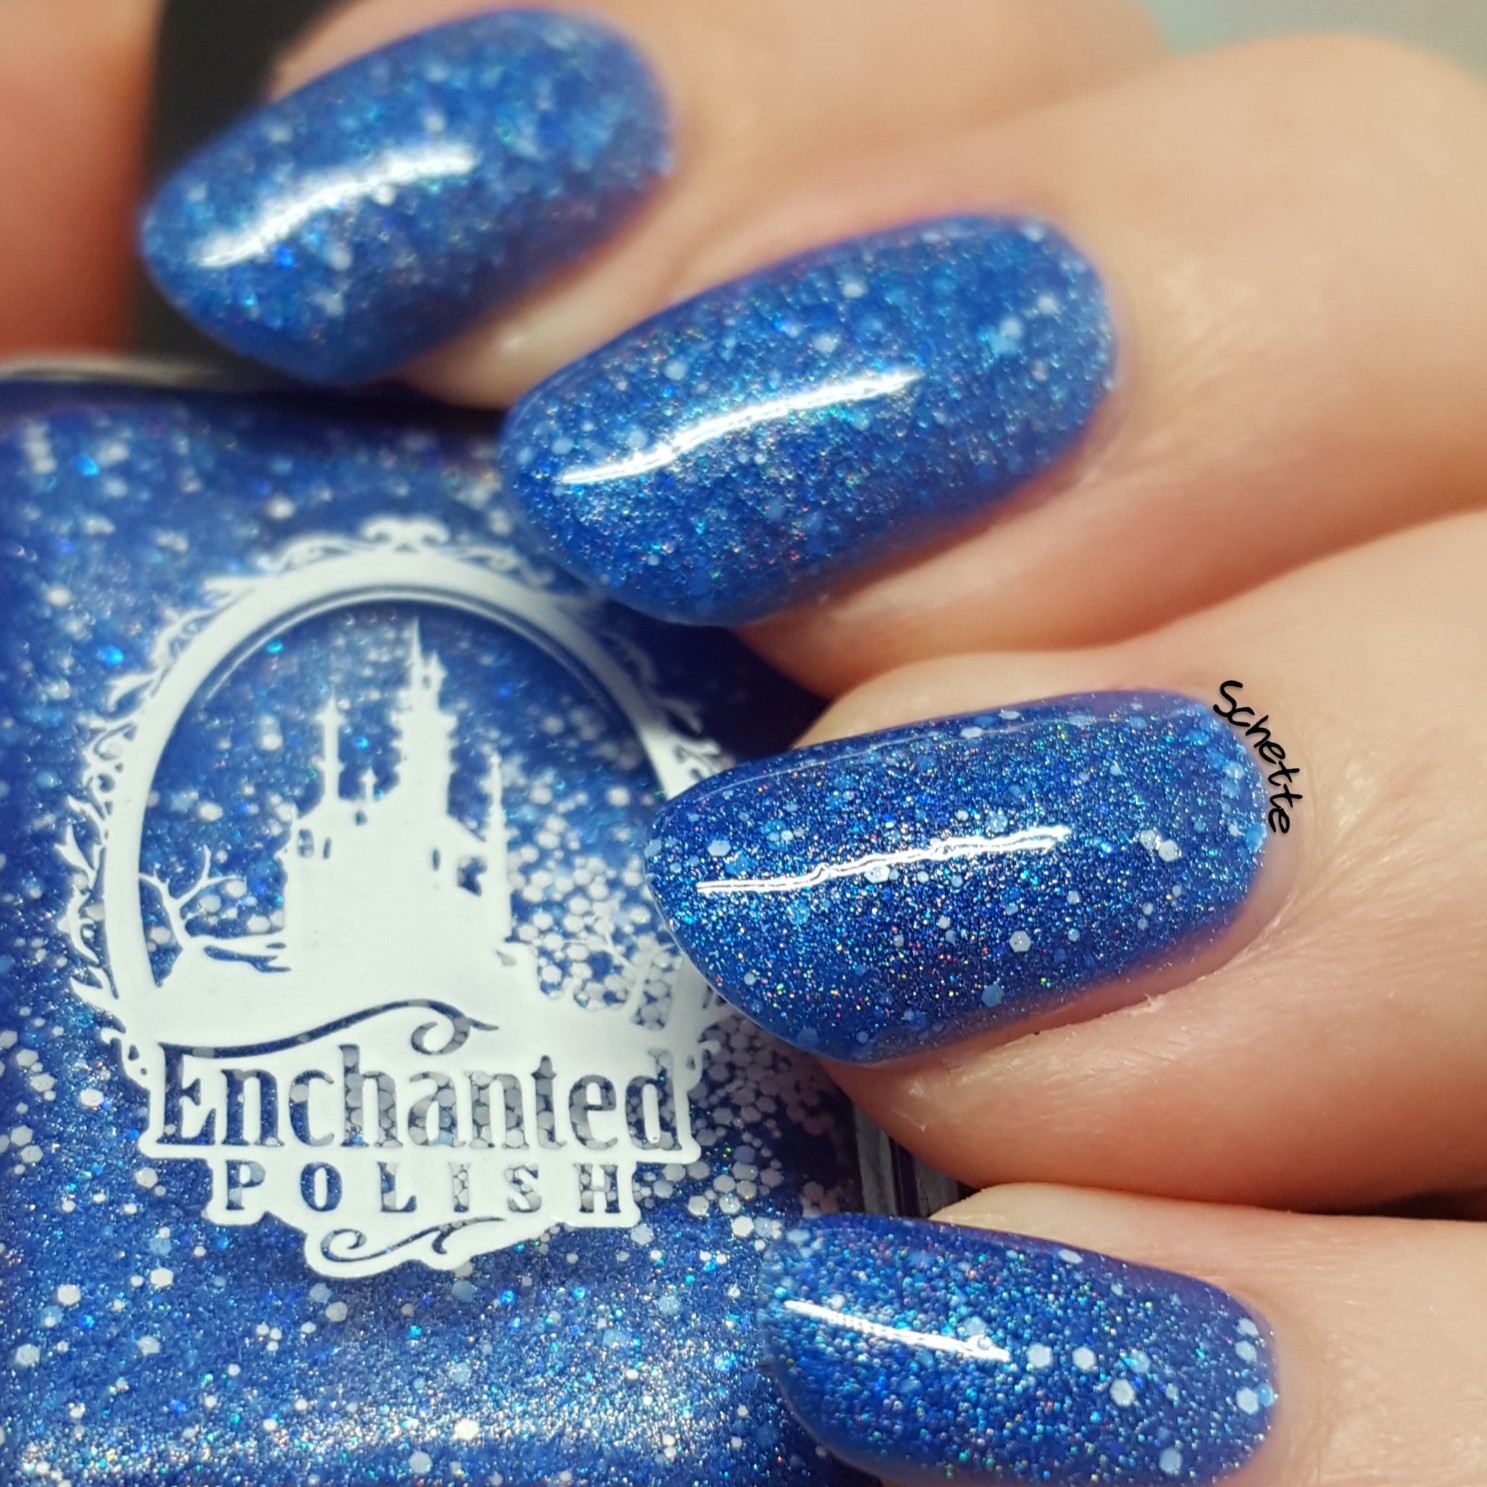 Enchanted Polish - December 2018